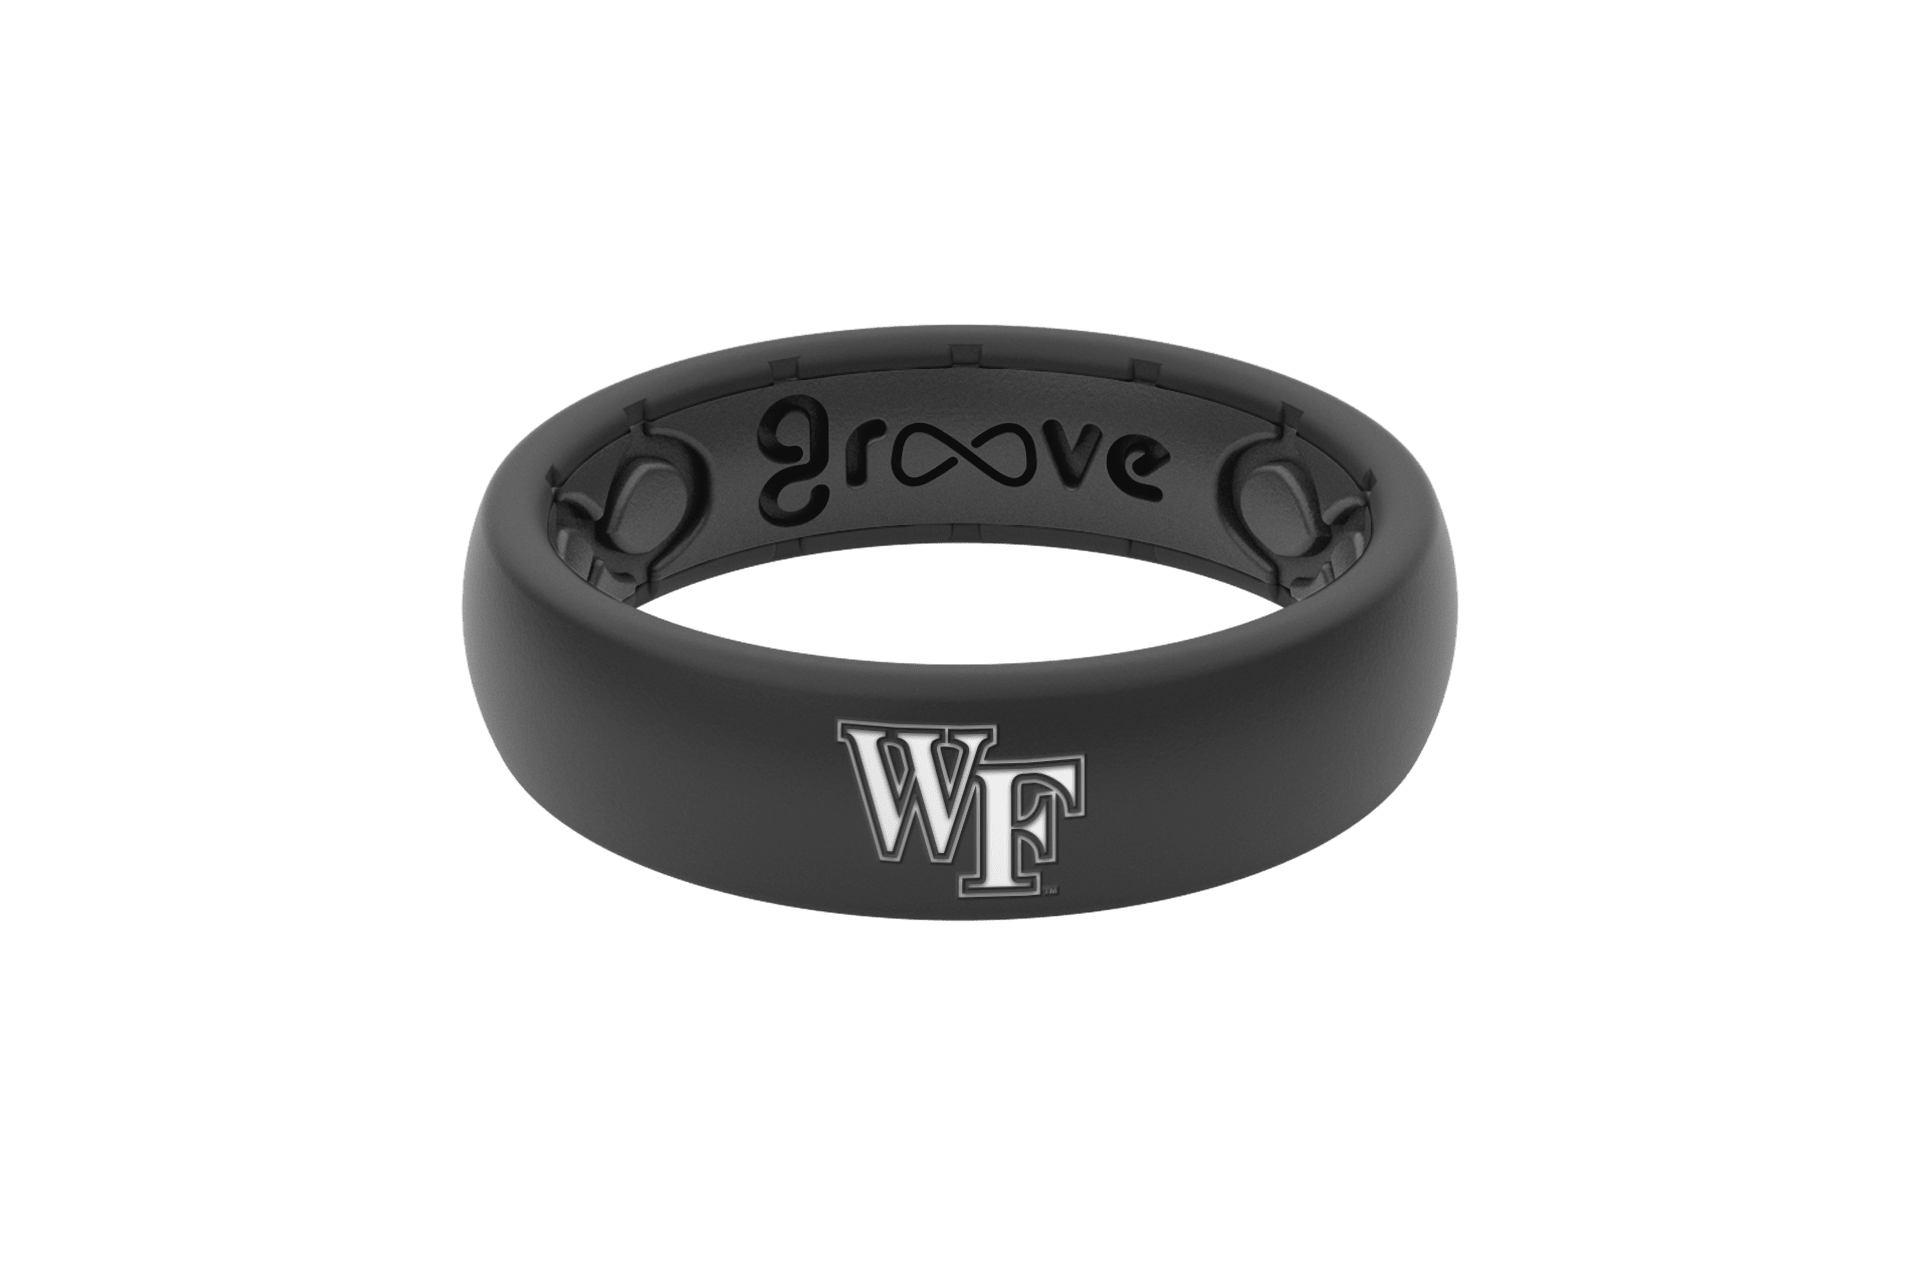 Thin College Wake Forest - Groove Life Silicone Wedding Rings